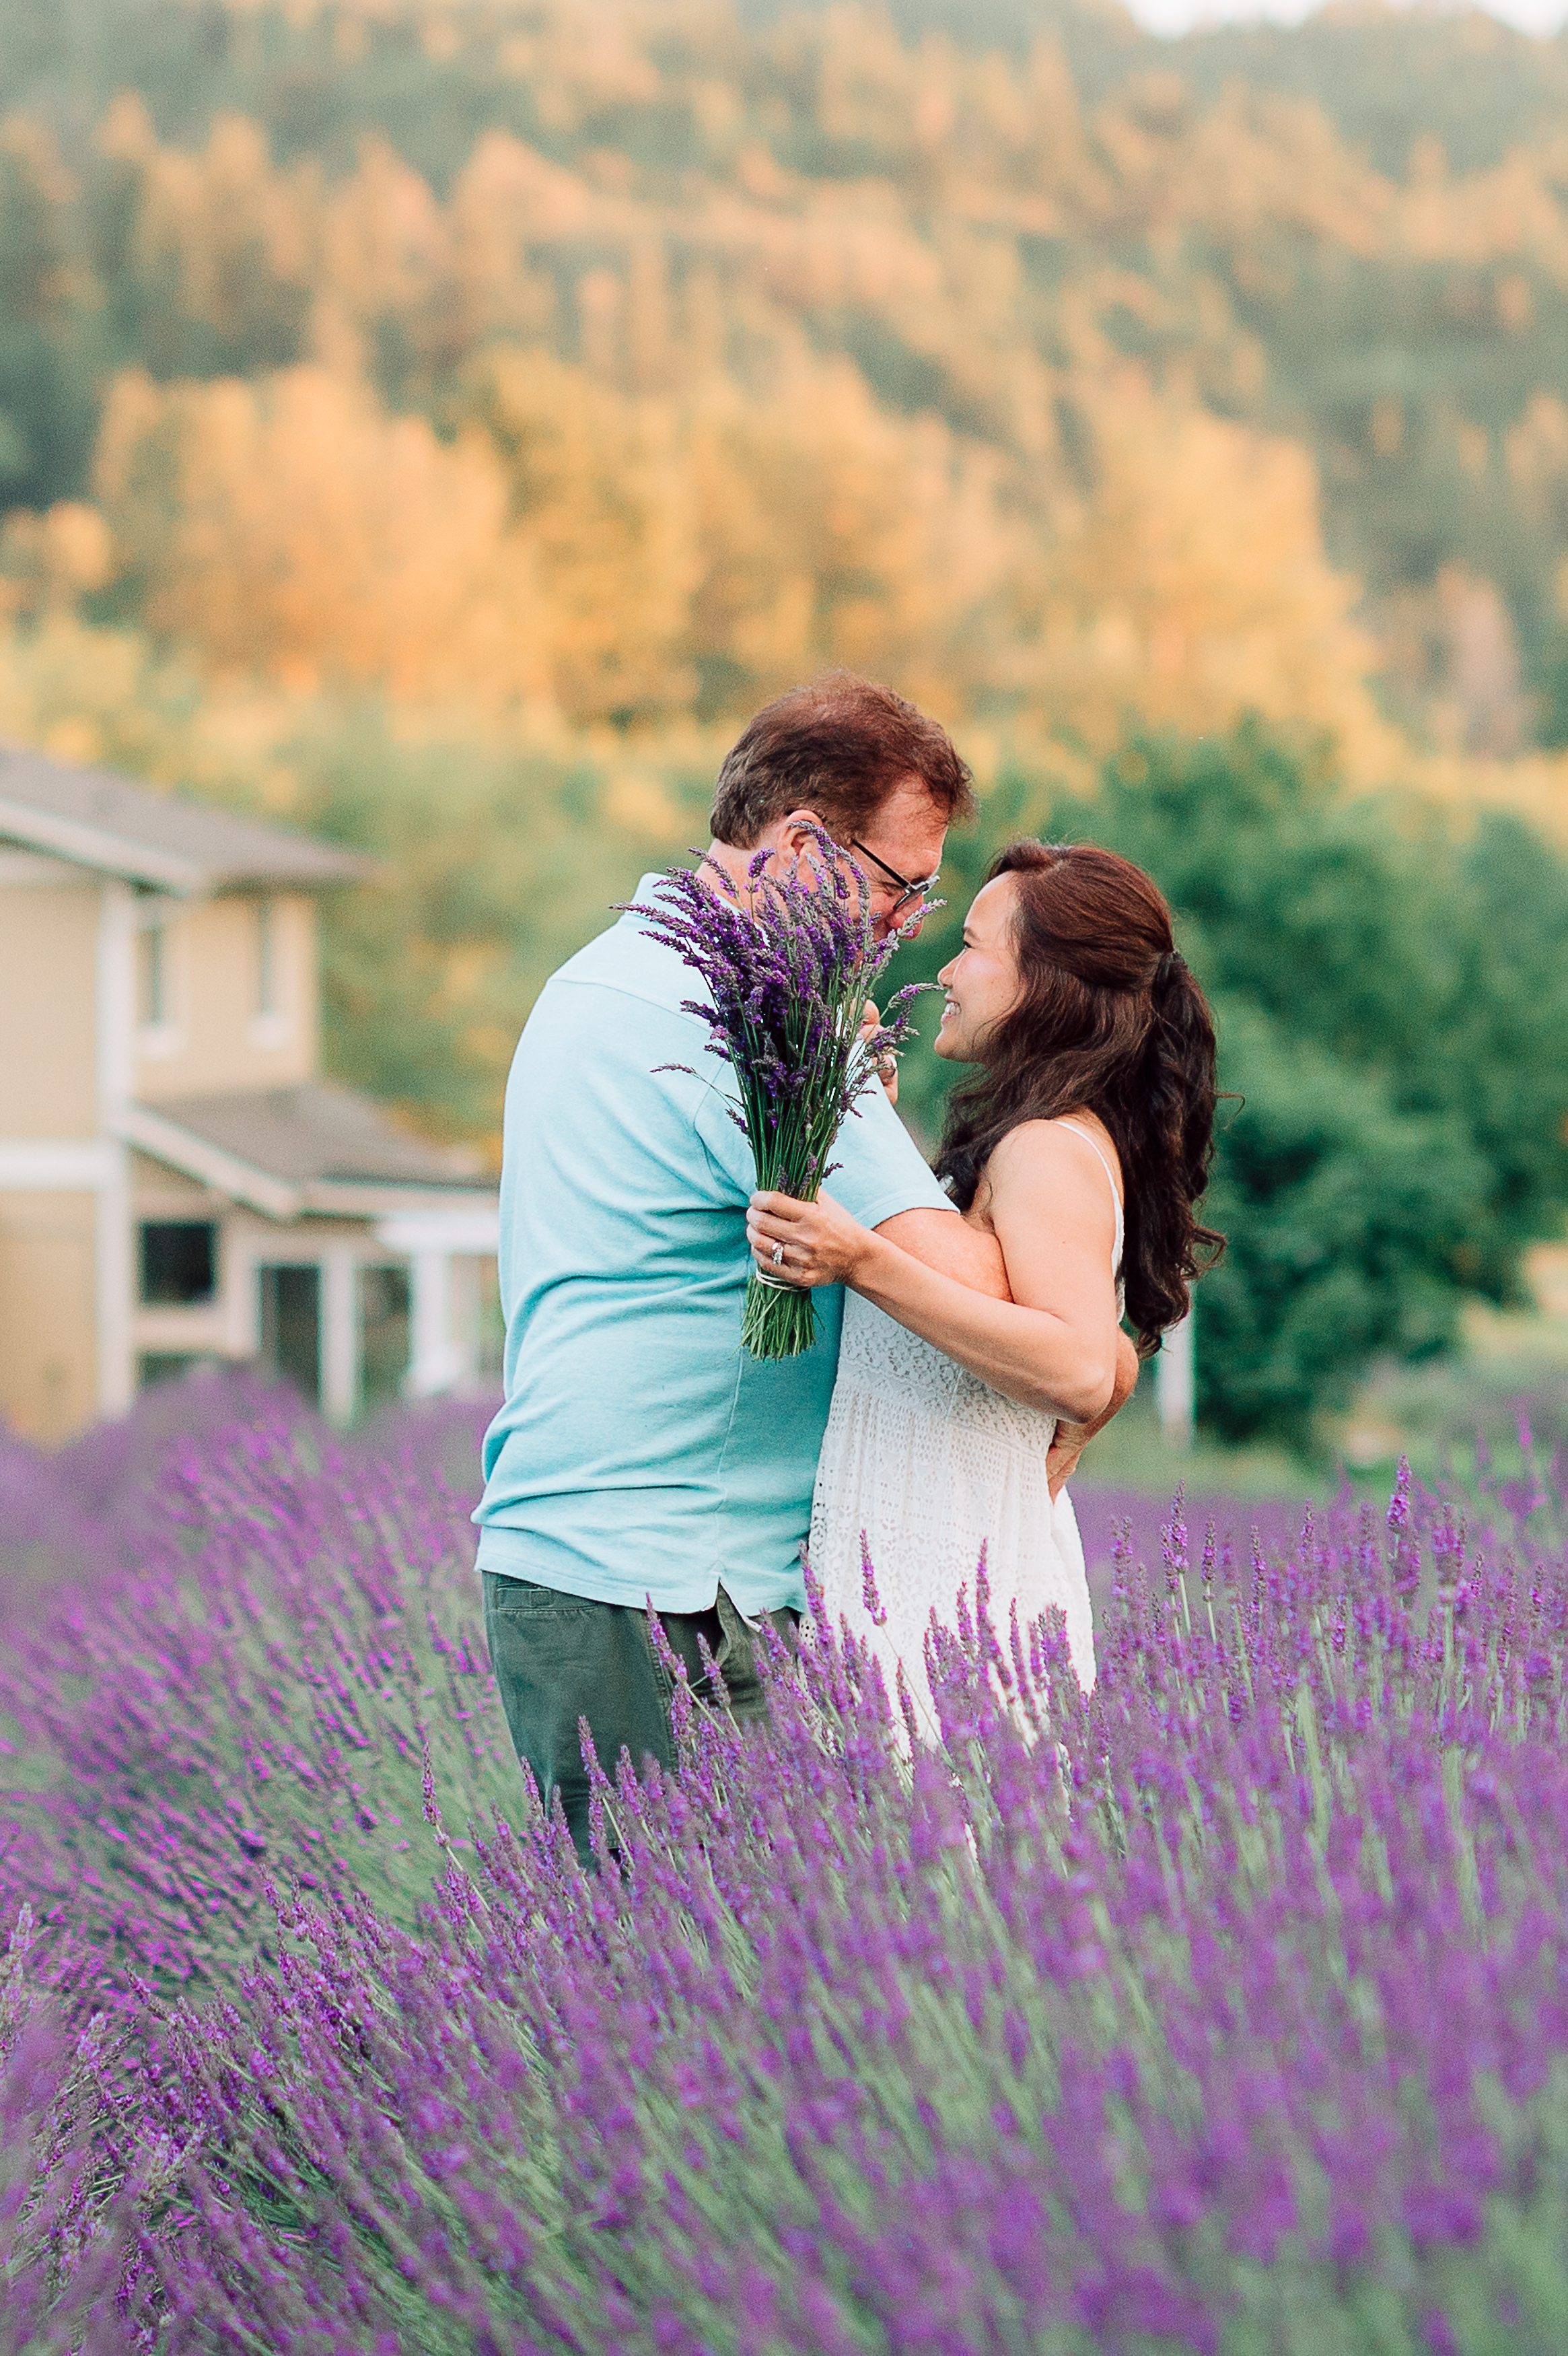 engagement_lavenderfield_youseephotography_LidiaOtto (50).jpg